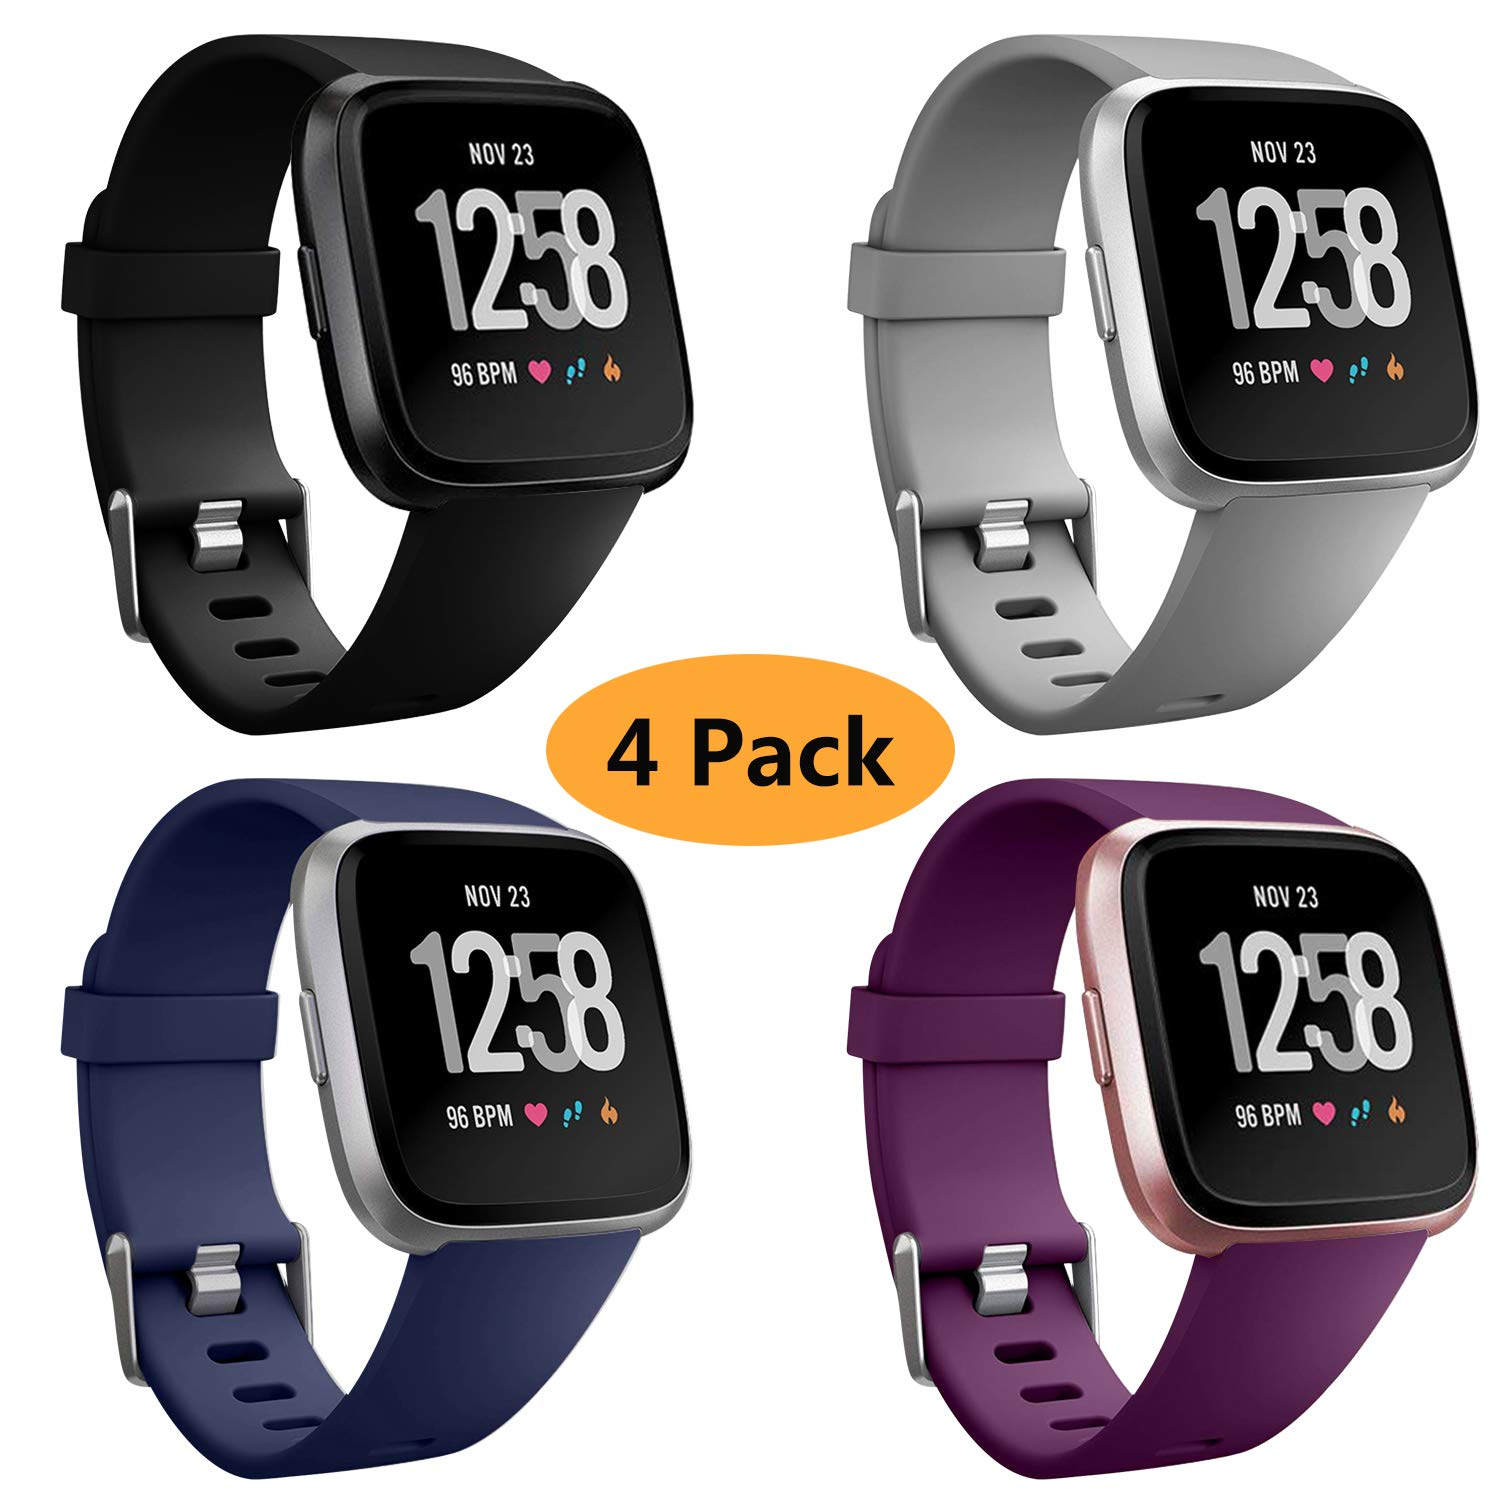 Neitooh 4 Packs Bands Compatible with Fitbit Versa/Versa 2/Fitbit Versa Lite for Women and Men, Classic Soft Silicone Sport Strap Replacement ...